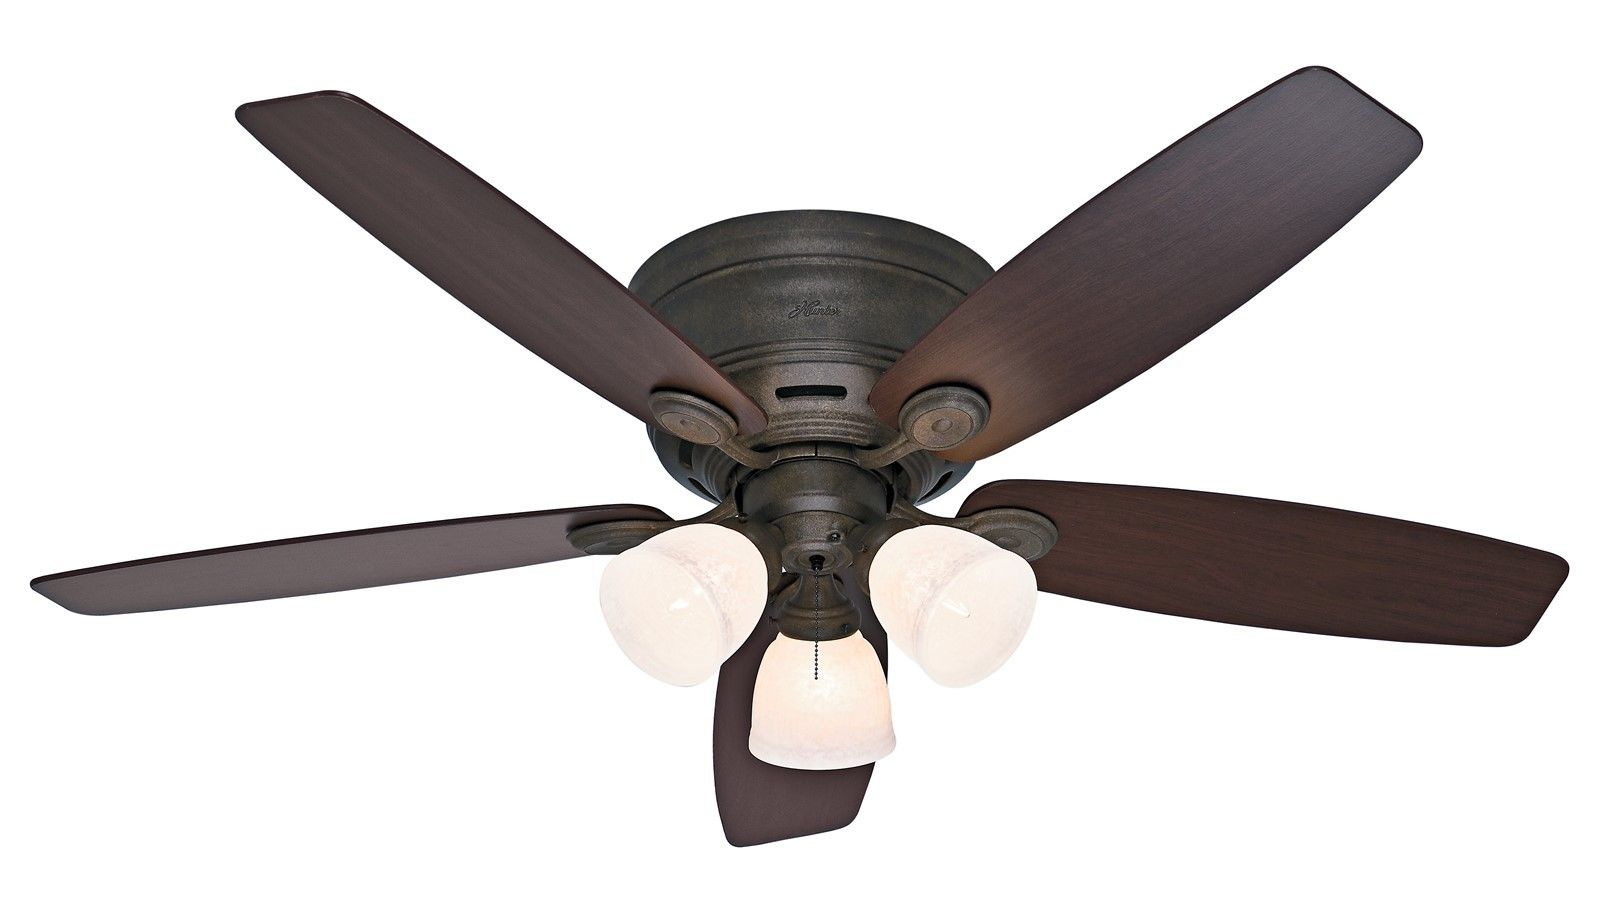 Hunter bayview Provencal ceiling fan